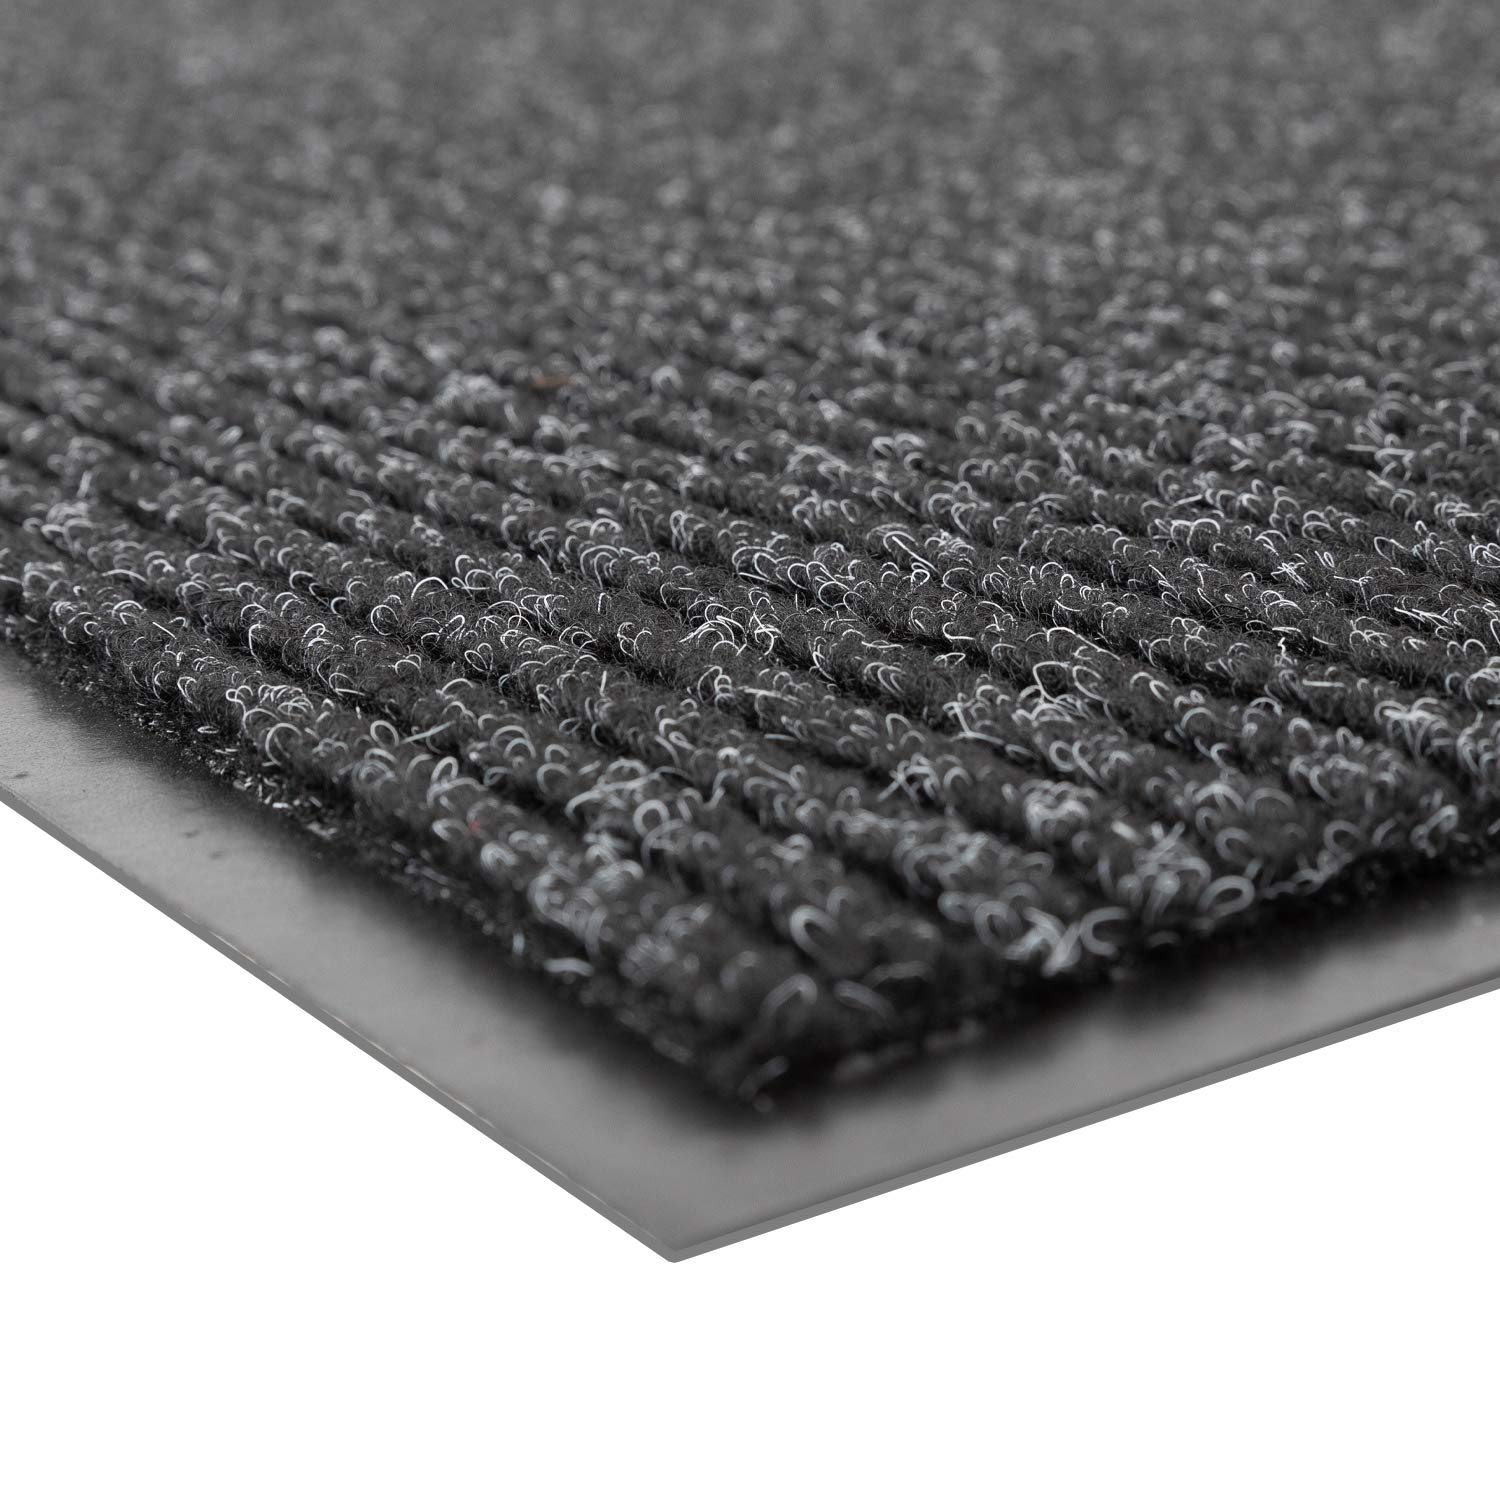 Notrax 109S0046CH Carpeted Entrance Mat, Charcoal, 4ft.x6ft.                Notrax 109 Brush Step Entrance Mat, For Home or Office, 4' X 8' Charcoal, 109S0048CH                Notrax 109 Brush Step Entrance Mat, 3' x 10', Charcoal (109S0310CH)